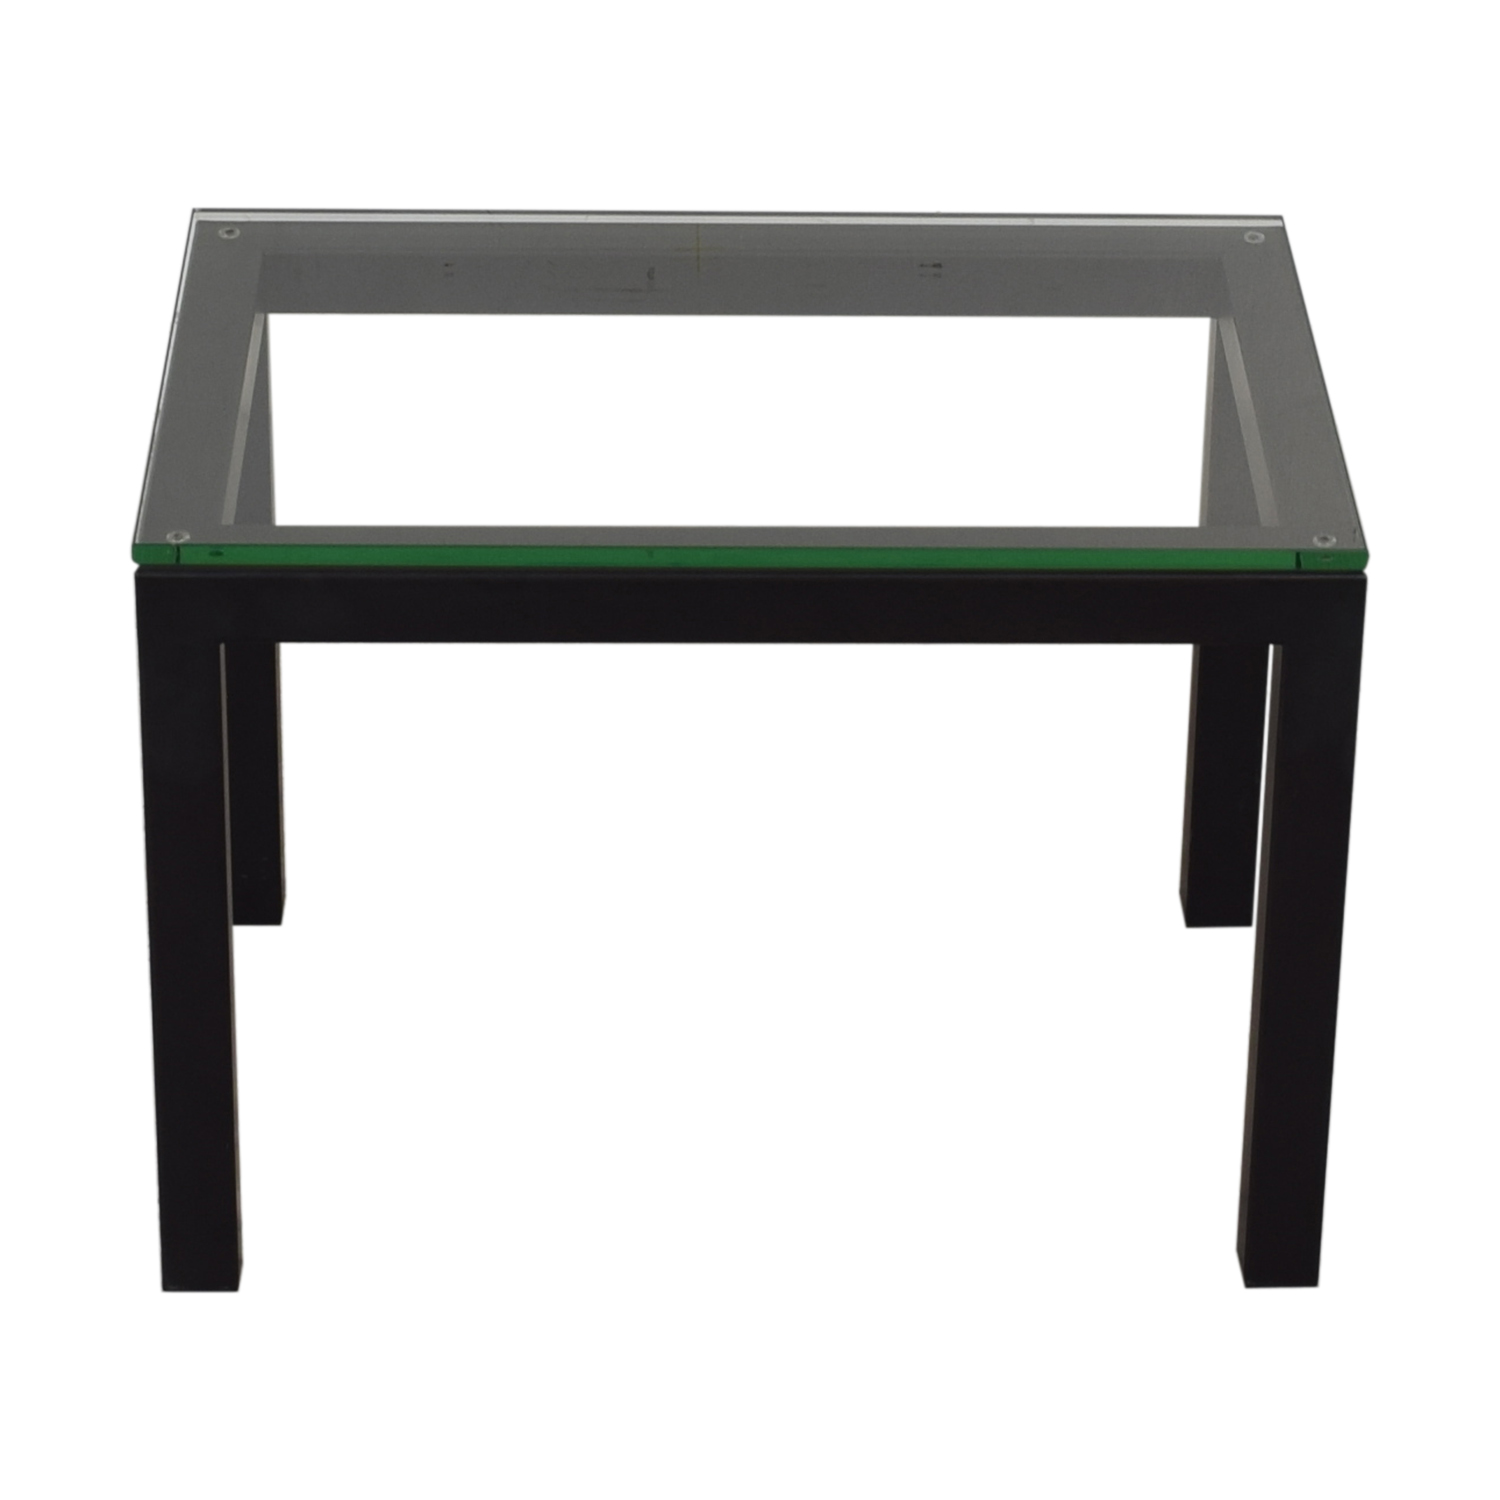 Crate & Barrel Crate & Barrel Parsons Clear Glass Top End Table used